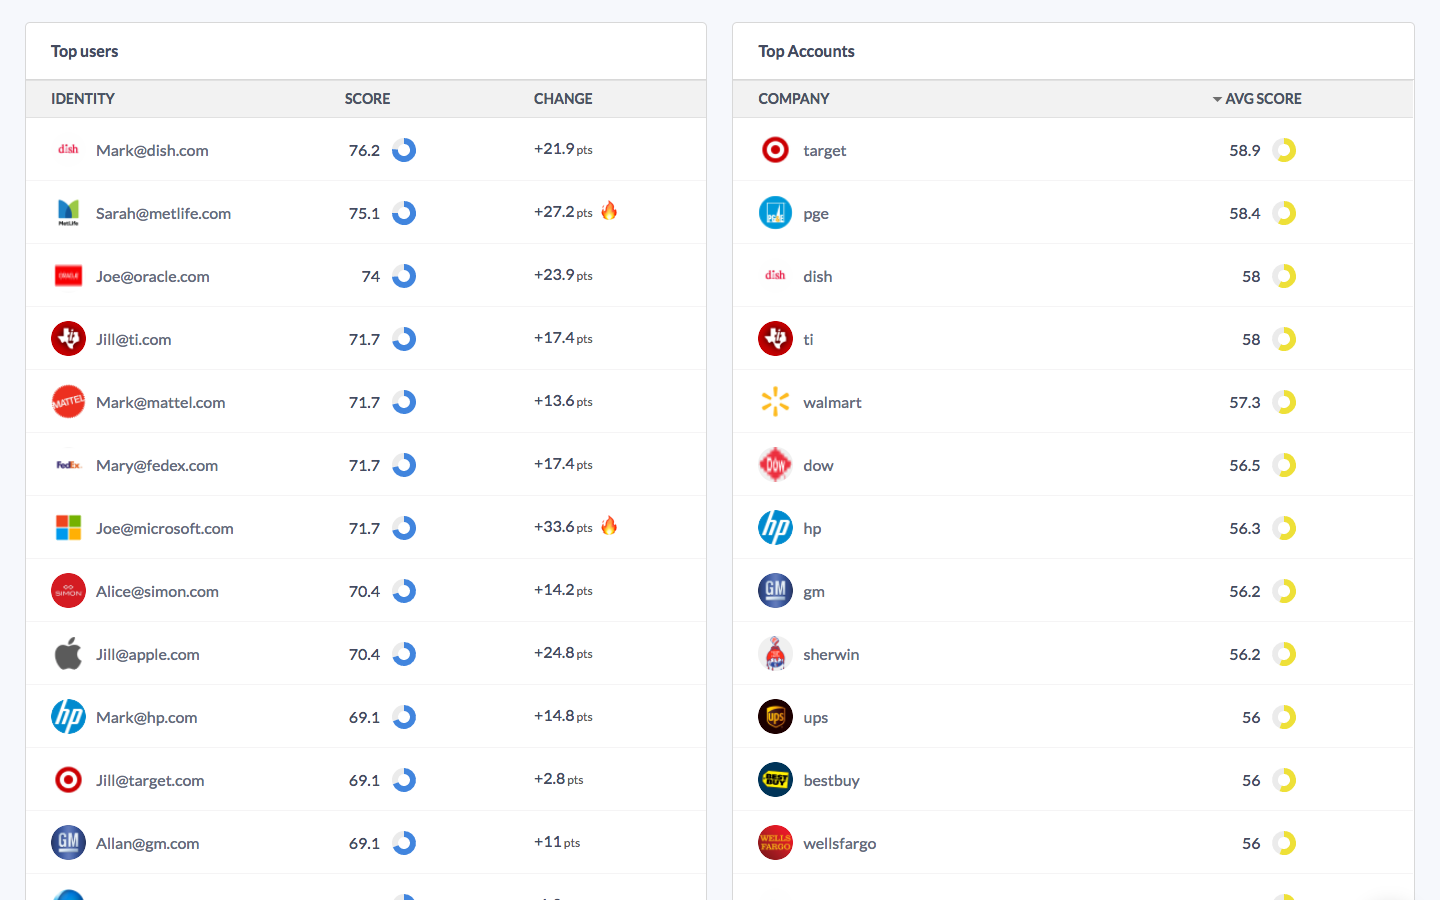 Ranking of top users and accounts based on engagement